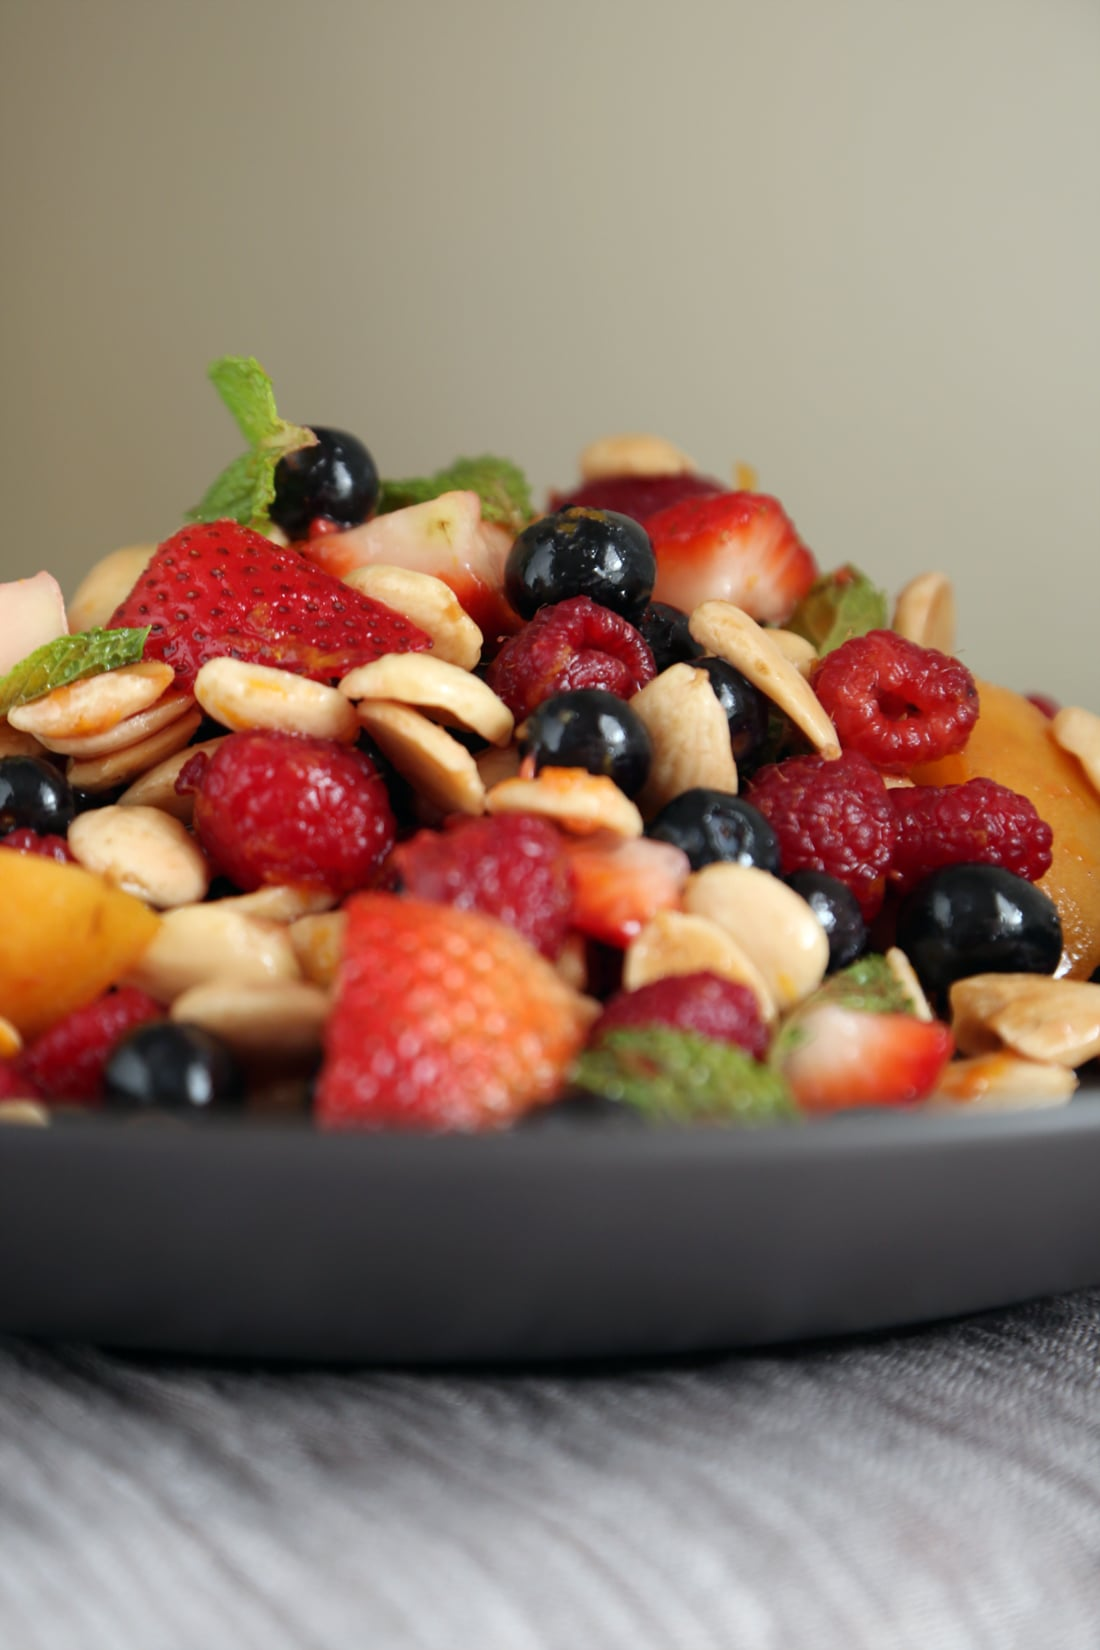 Summer Fruit Salad With Mint and Almonds